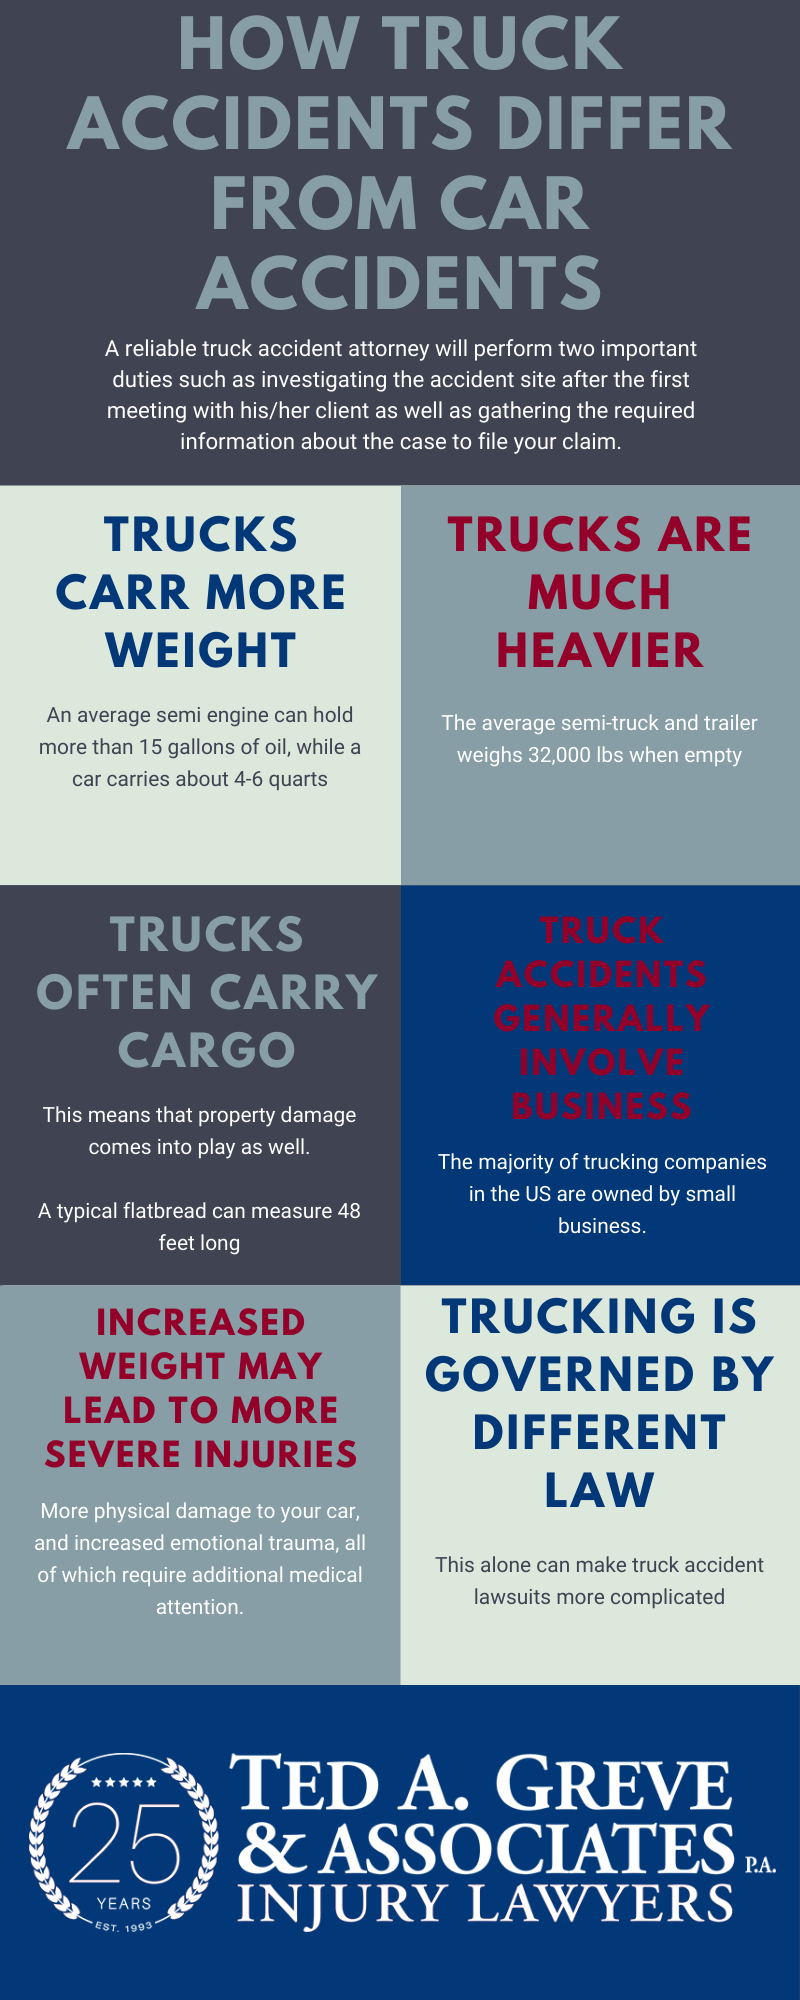 Ted Greve Augusta Truck Accident Infographic